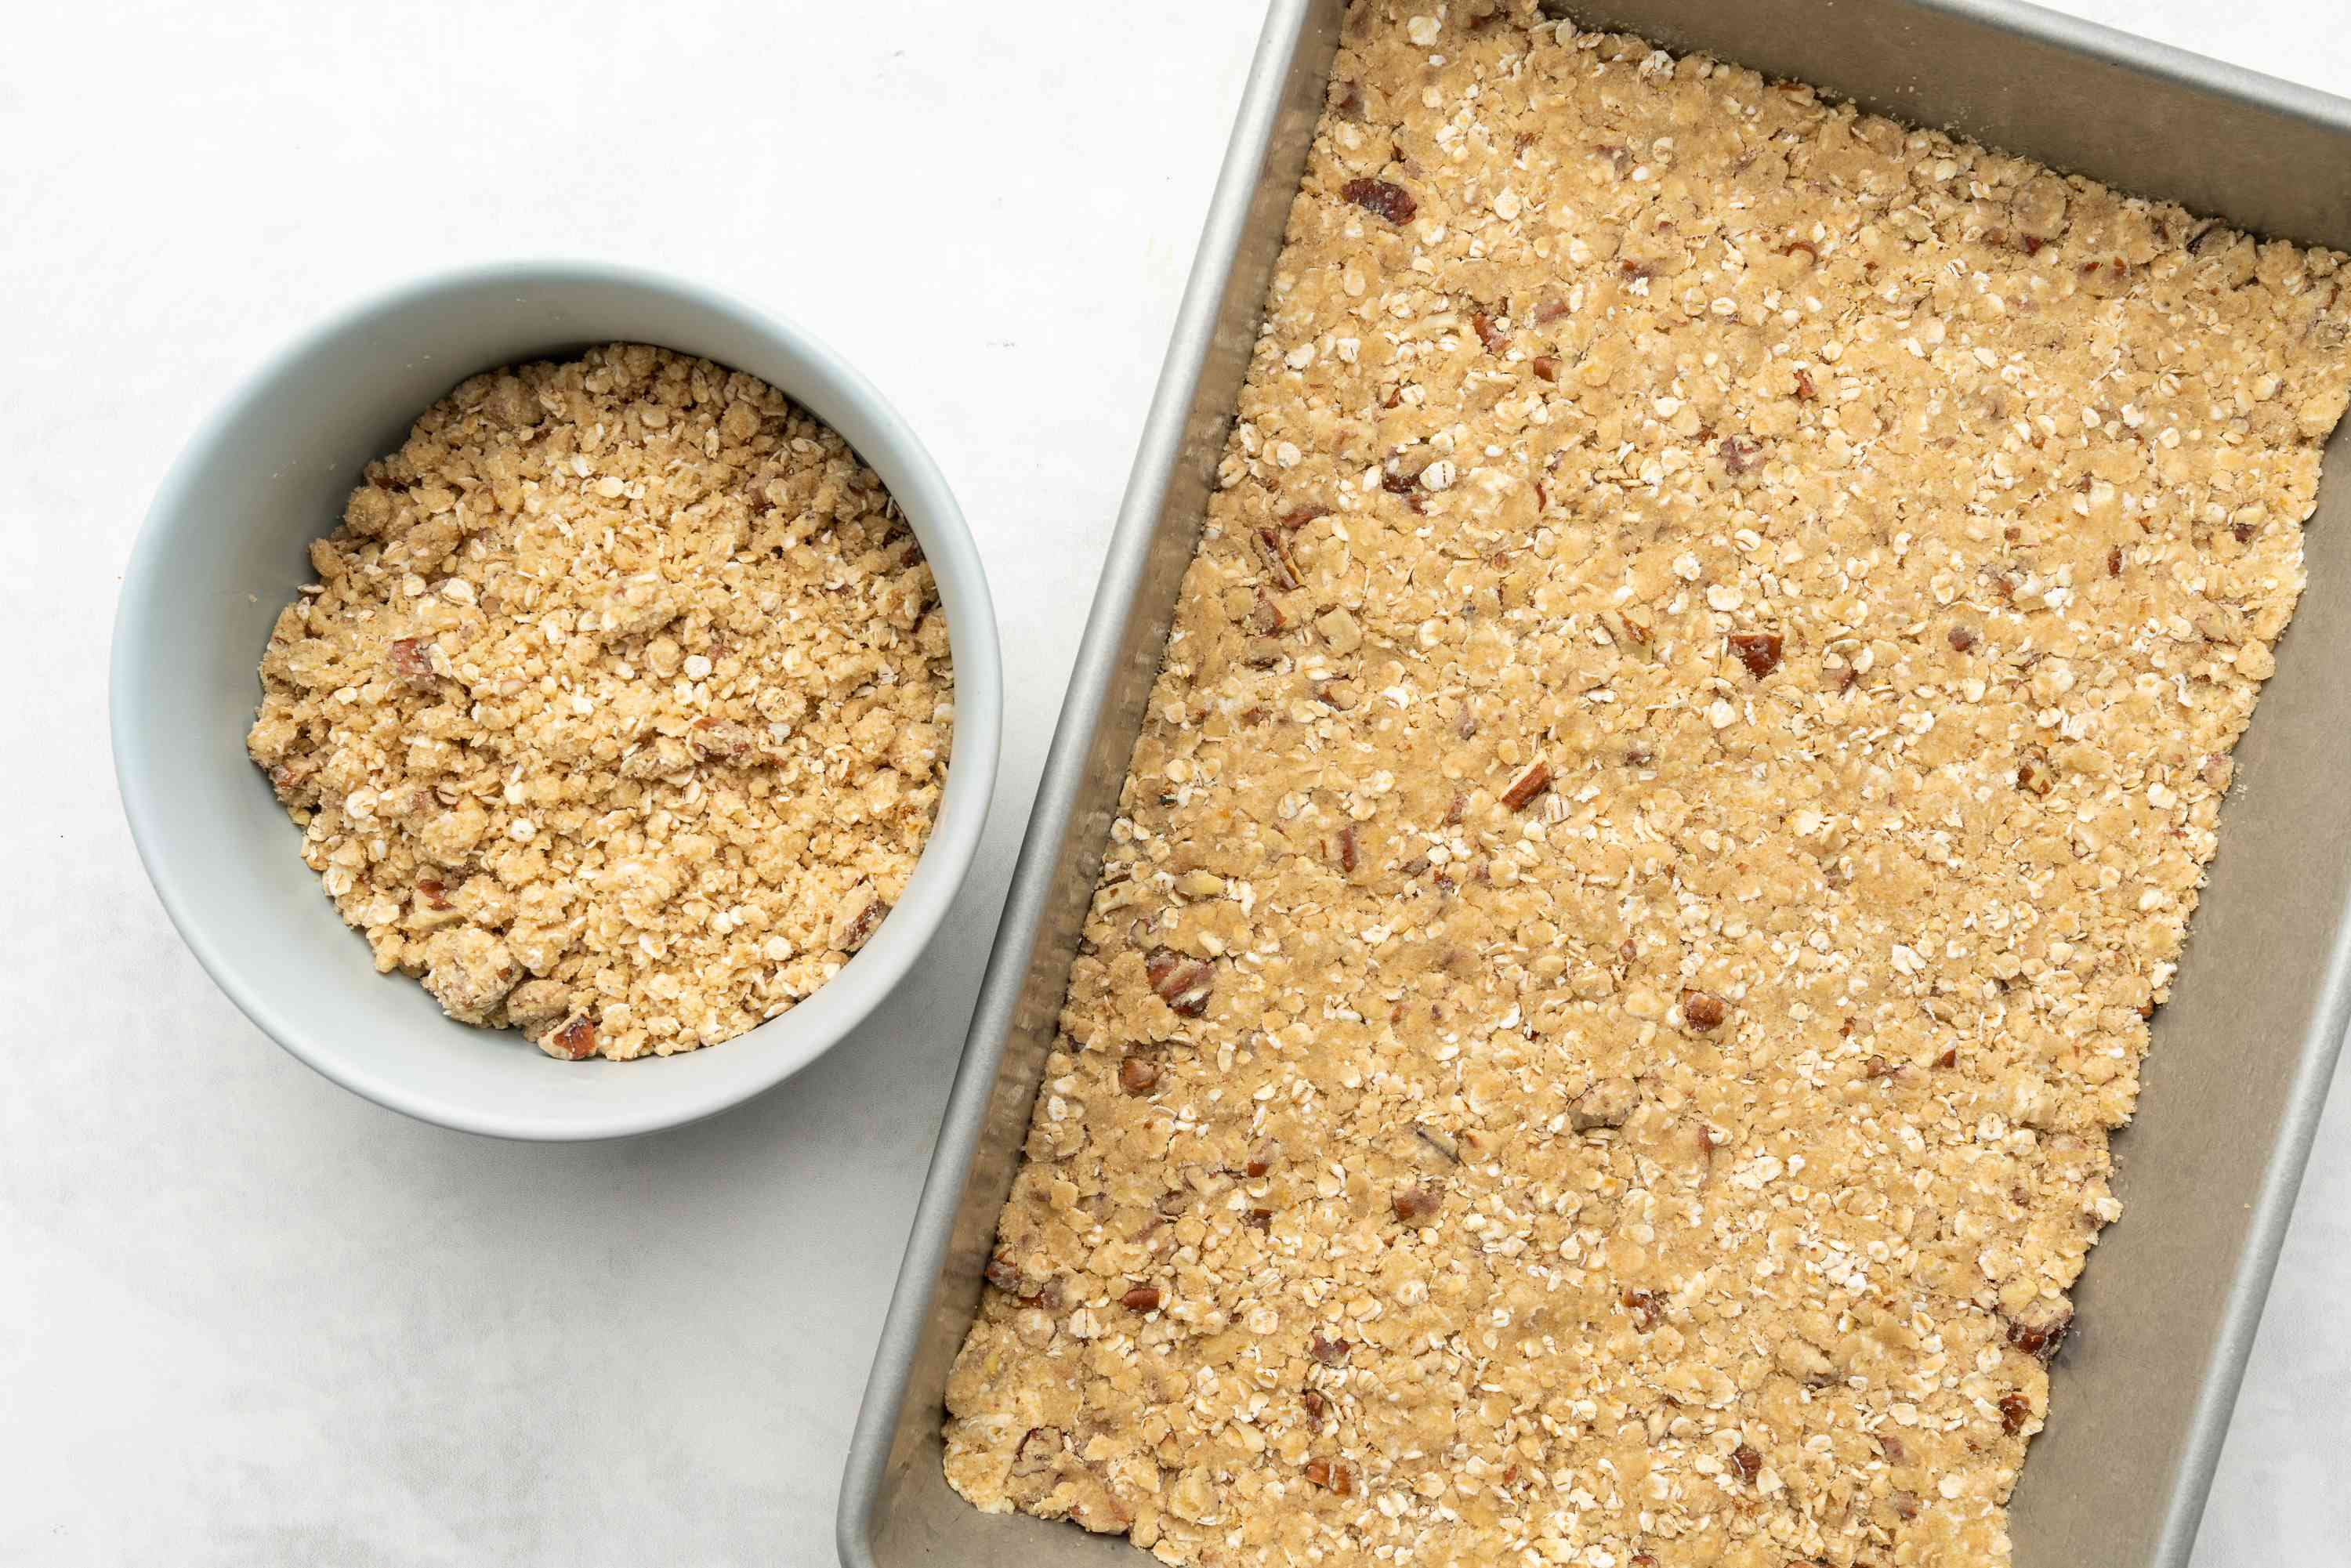 crumble in a baking pan